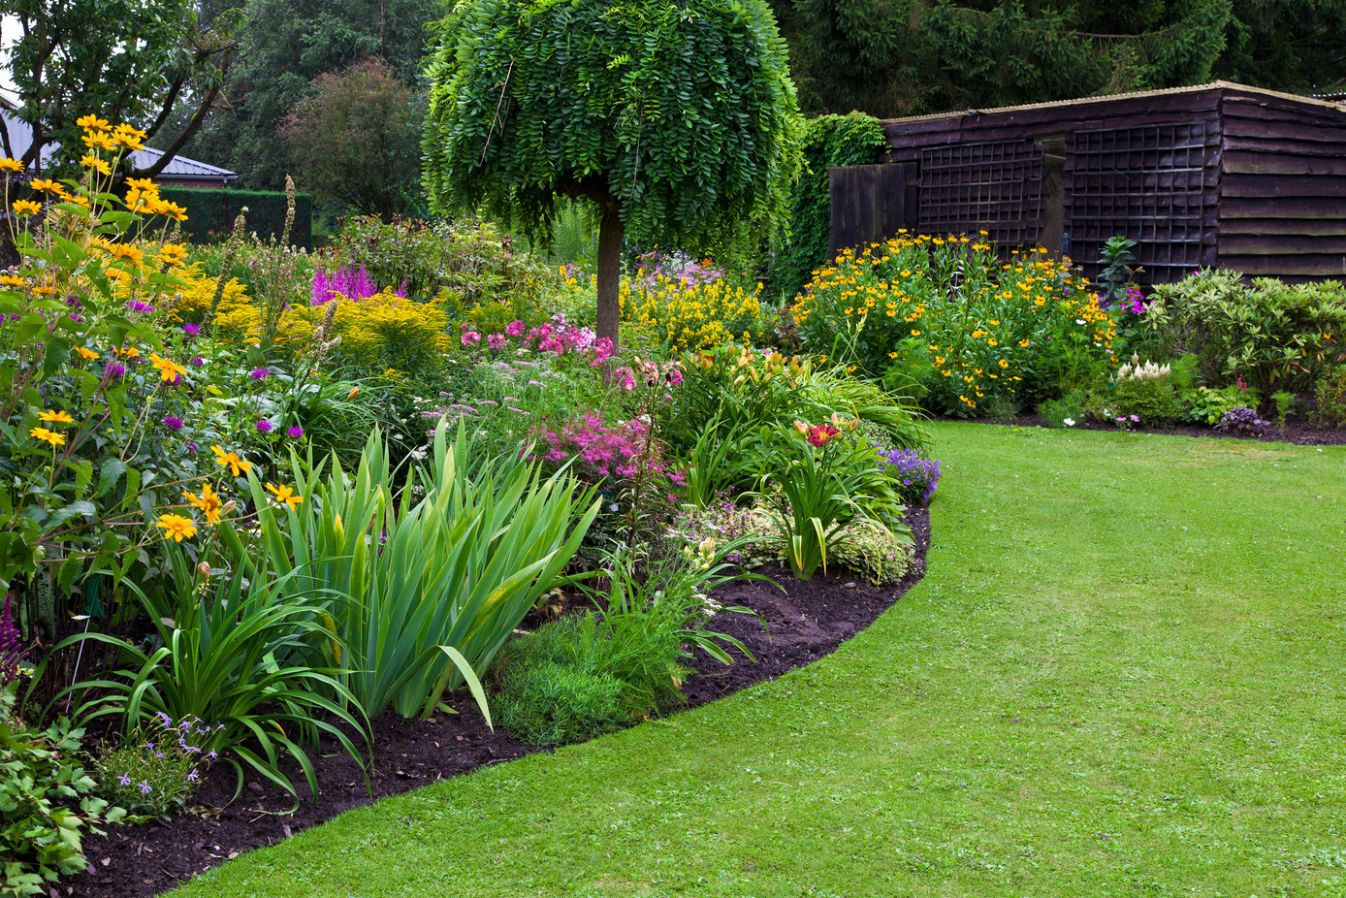 Creative Ideas to Landscape a Slope - Lawnstarter